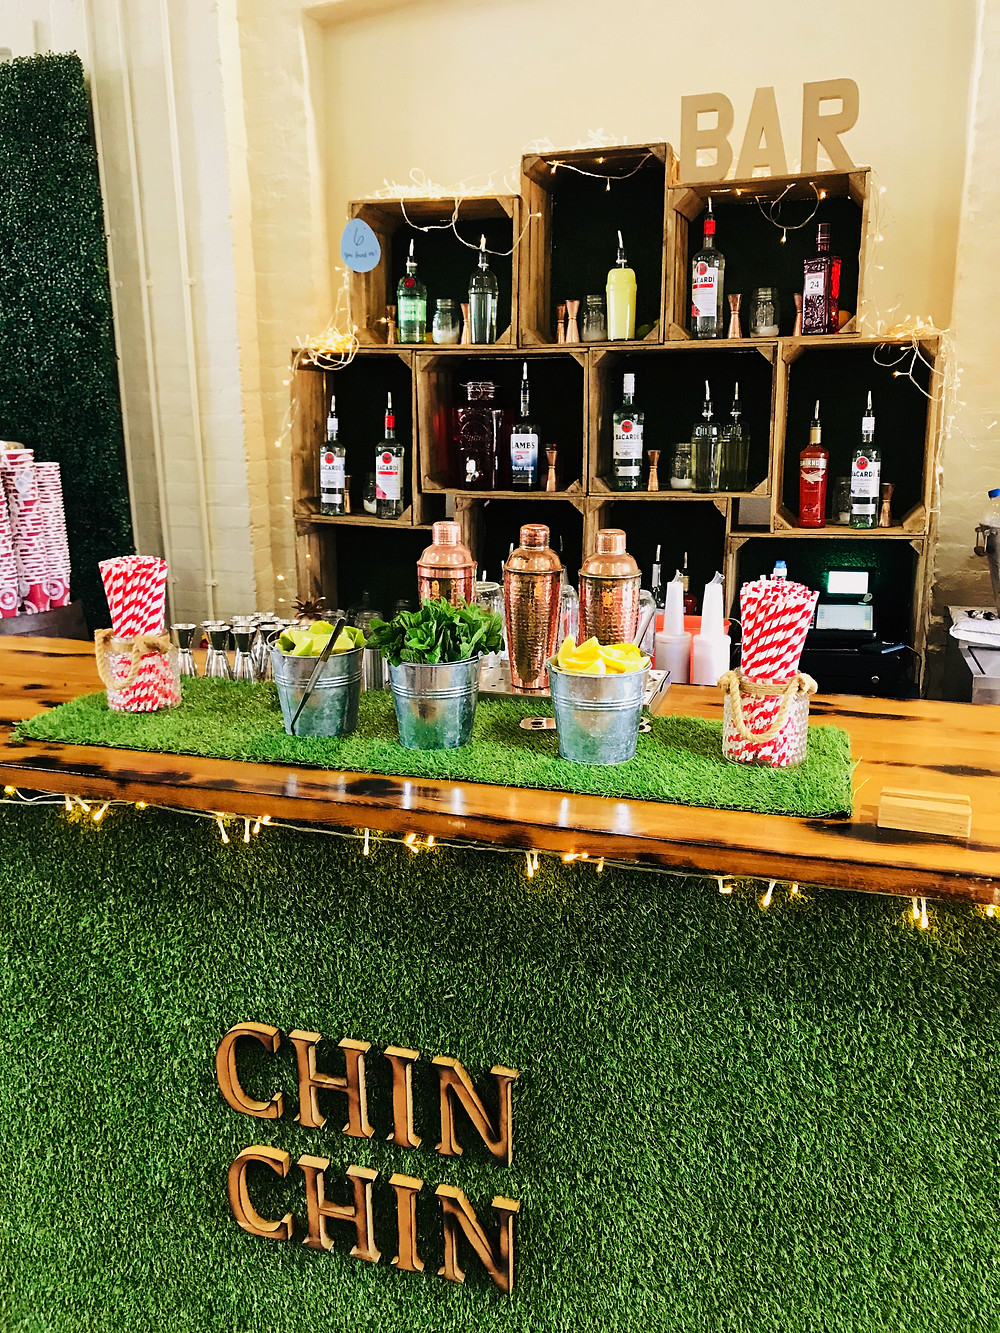 Chin Chin Lawn Bar at Etsy Made Local Easter Edition Canterbury